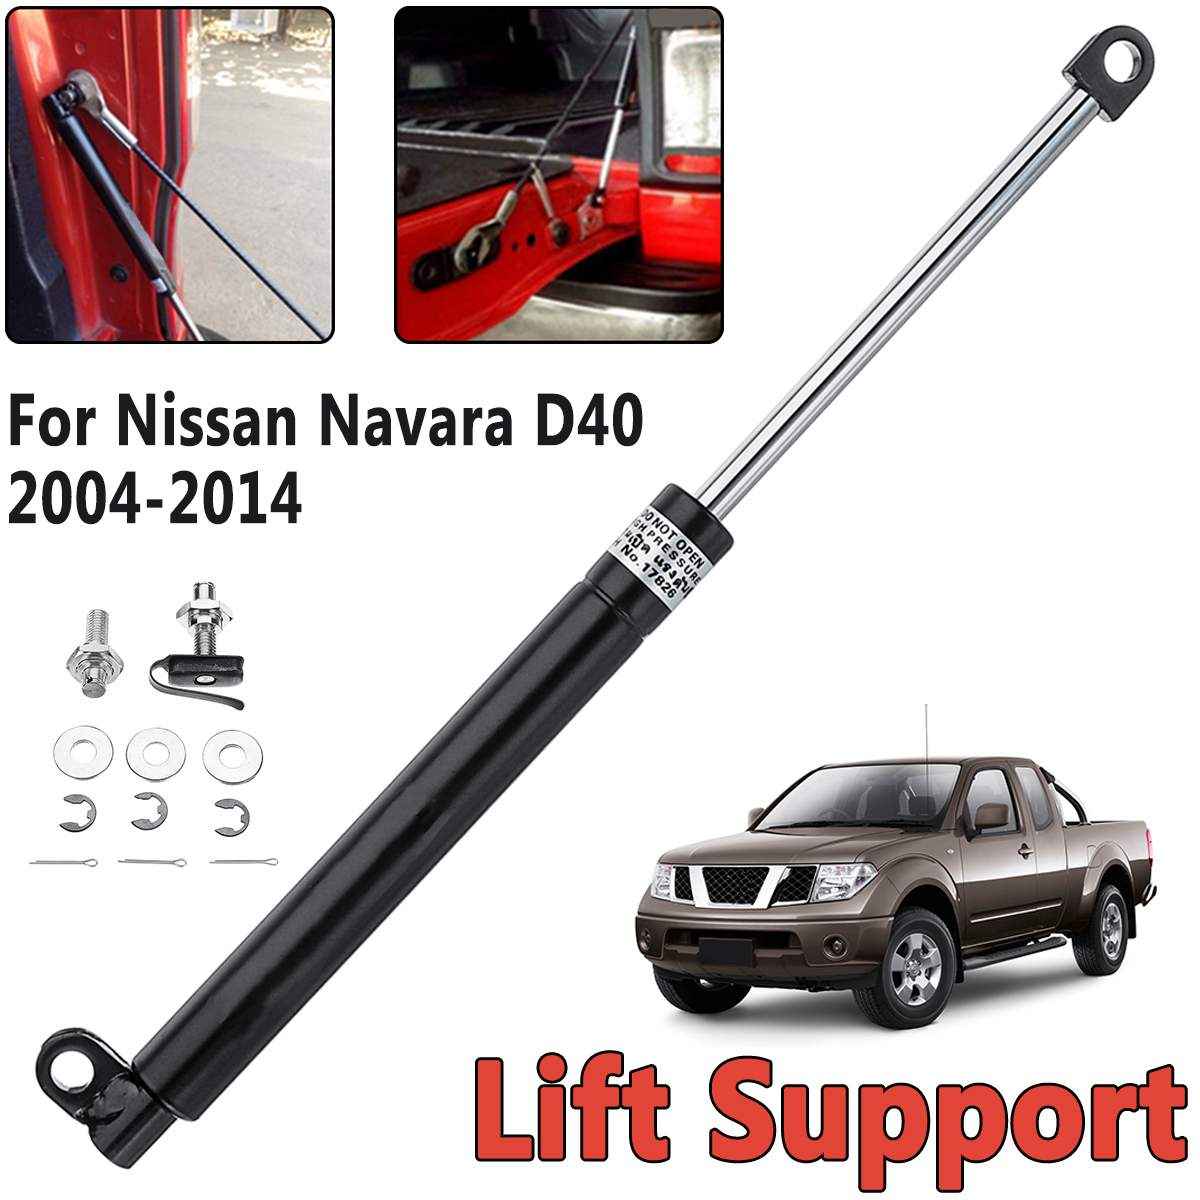 Rear Liftgate Tailgate Slow Down Trunk Gas Shock Strut Damper Lift Supports Fit For Nissan Navara D40 2004-2014Rear Liftgate Tailgate Slow Down Trunk Gas Shock Strut Damper Lift Supports Fit For Nissan Navara D40 2004-2014